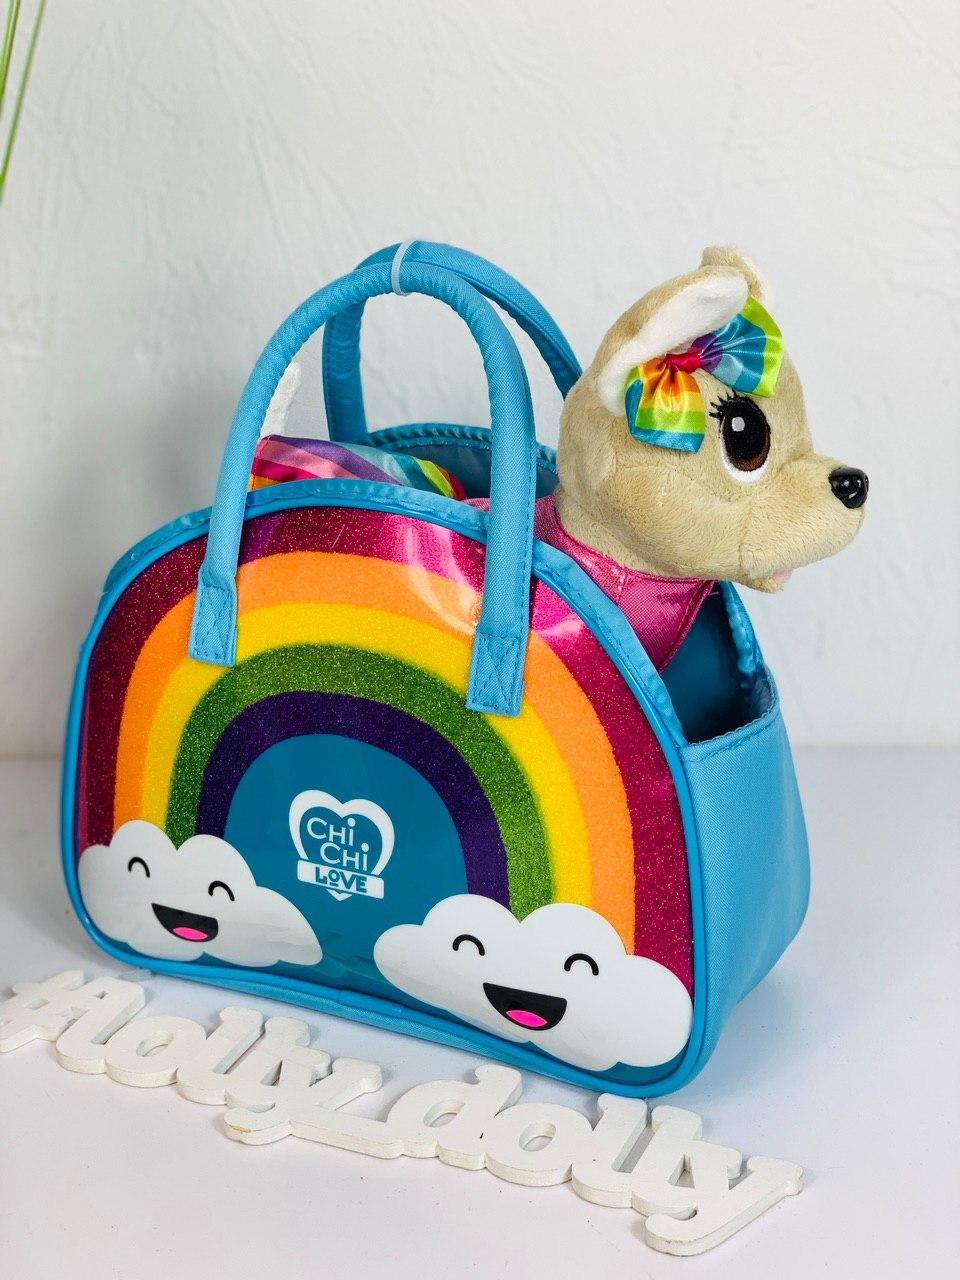 Собачка Chi Chi Love Fashion Rainbow ОРИГИНАЛ Simba 5893438 Чичи лав